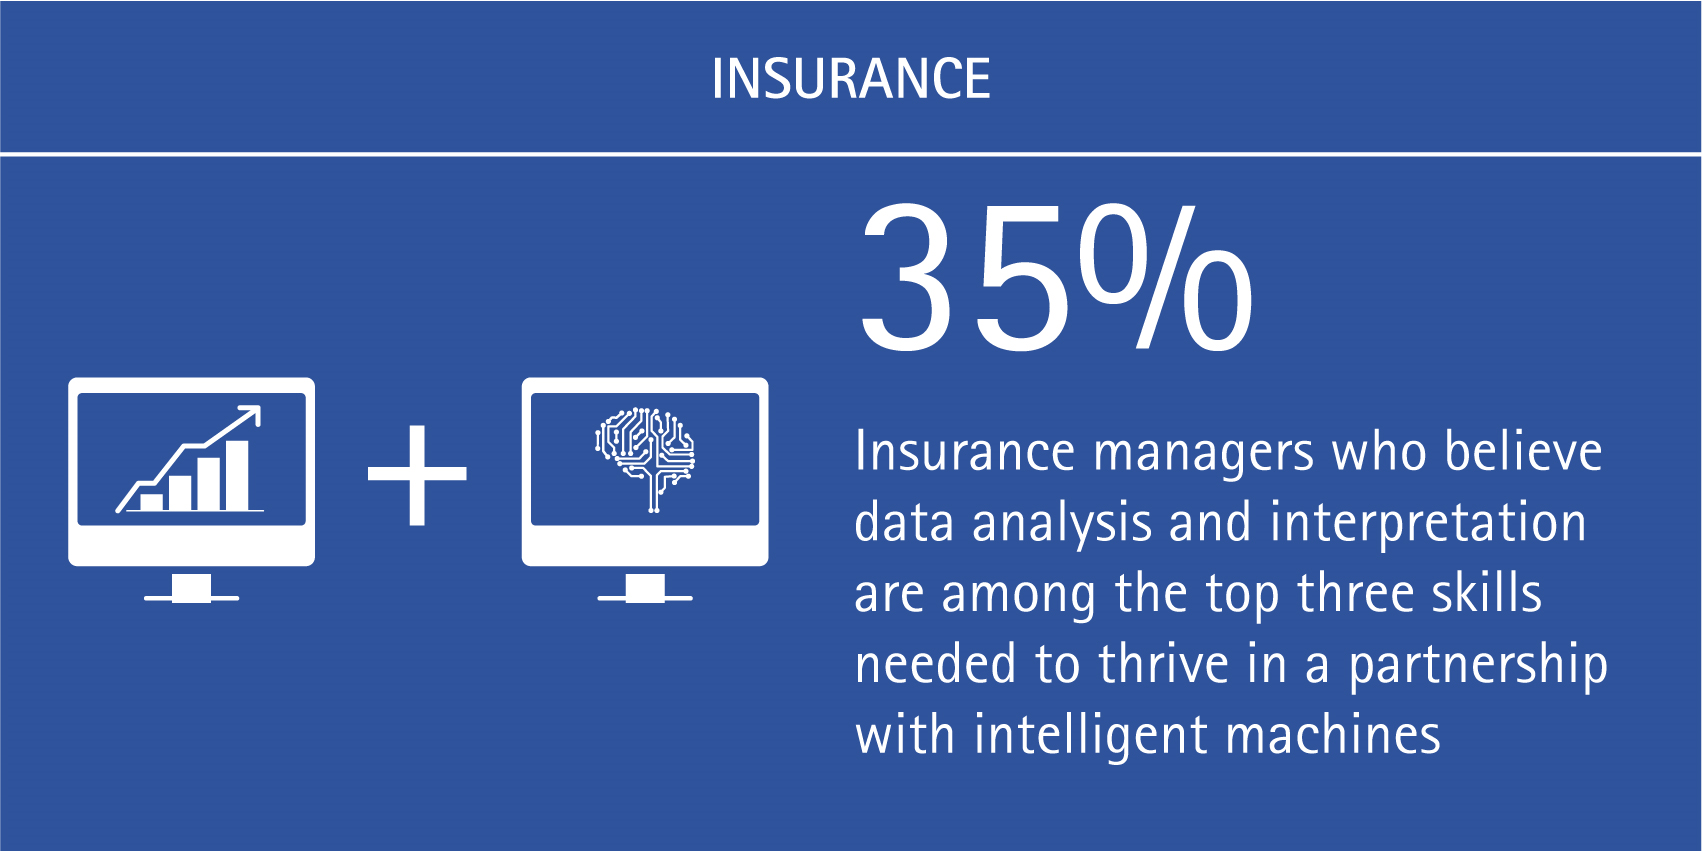 35% of insurance managers believe data analysis and interpretation are among the top three skills needed to thrive in a partnership with intelligent machines.